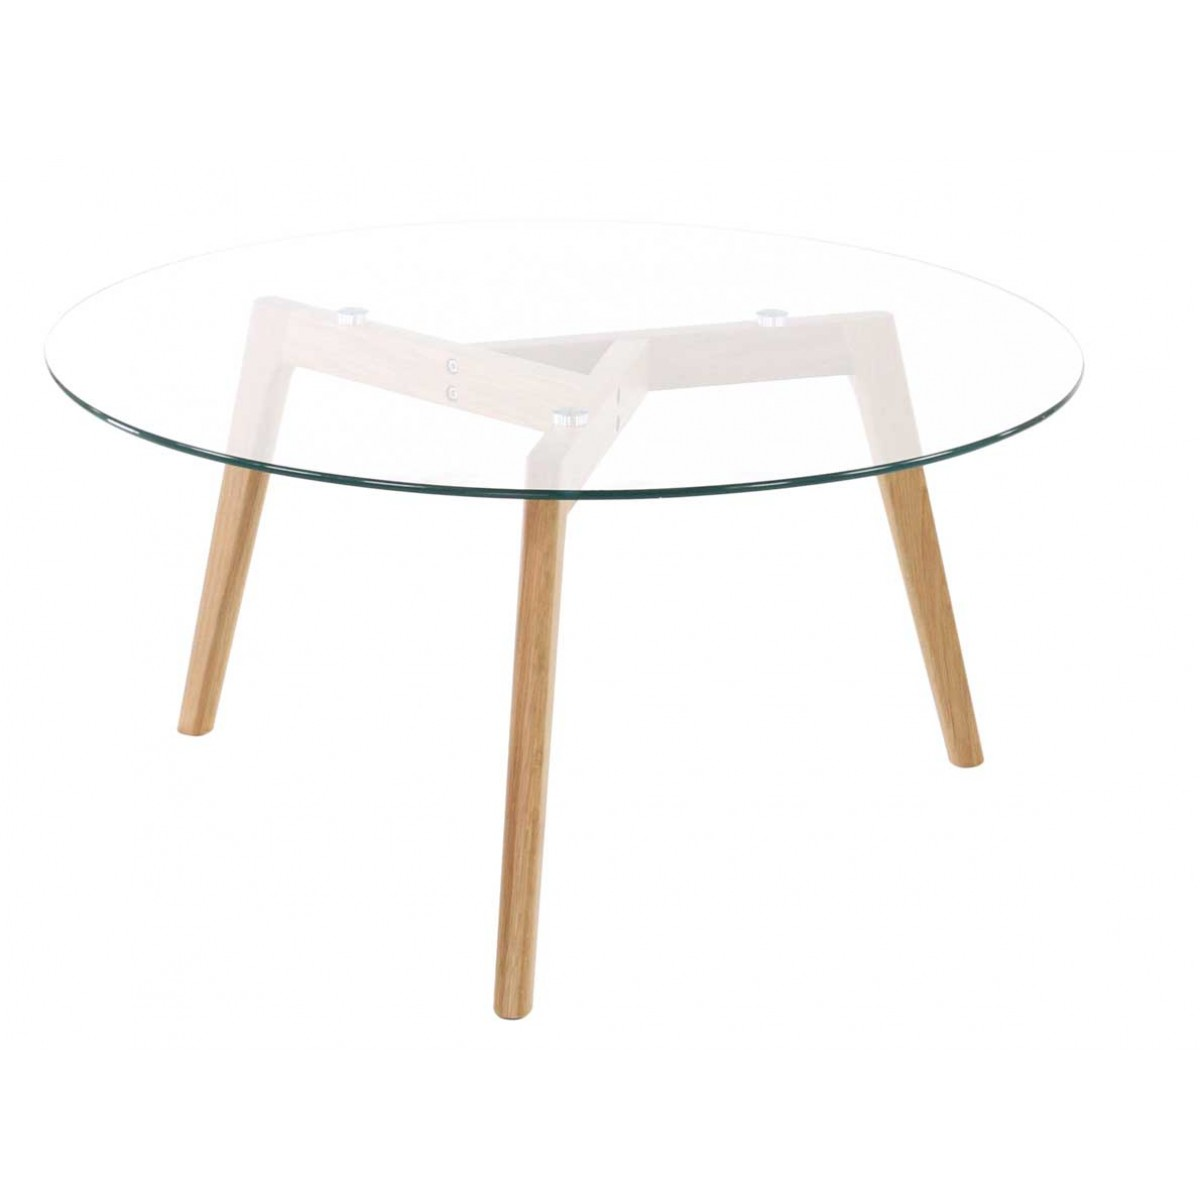 Table basse en verre ronde design scandie mooviin - Tables rondes en verre ...